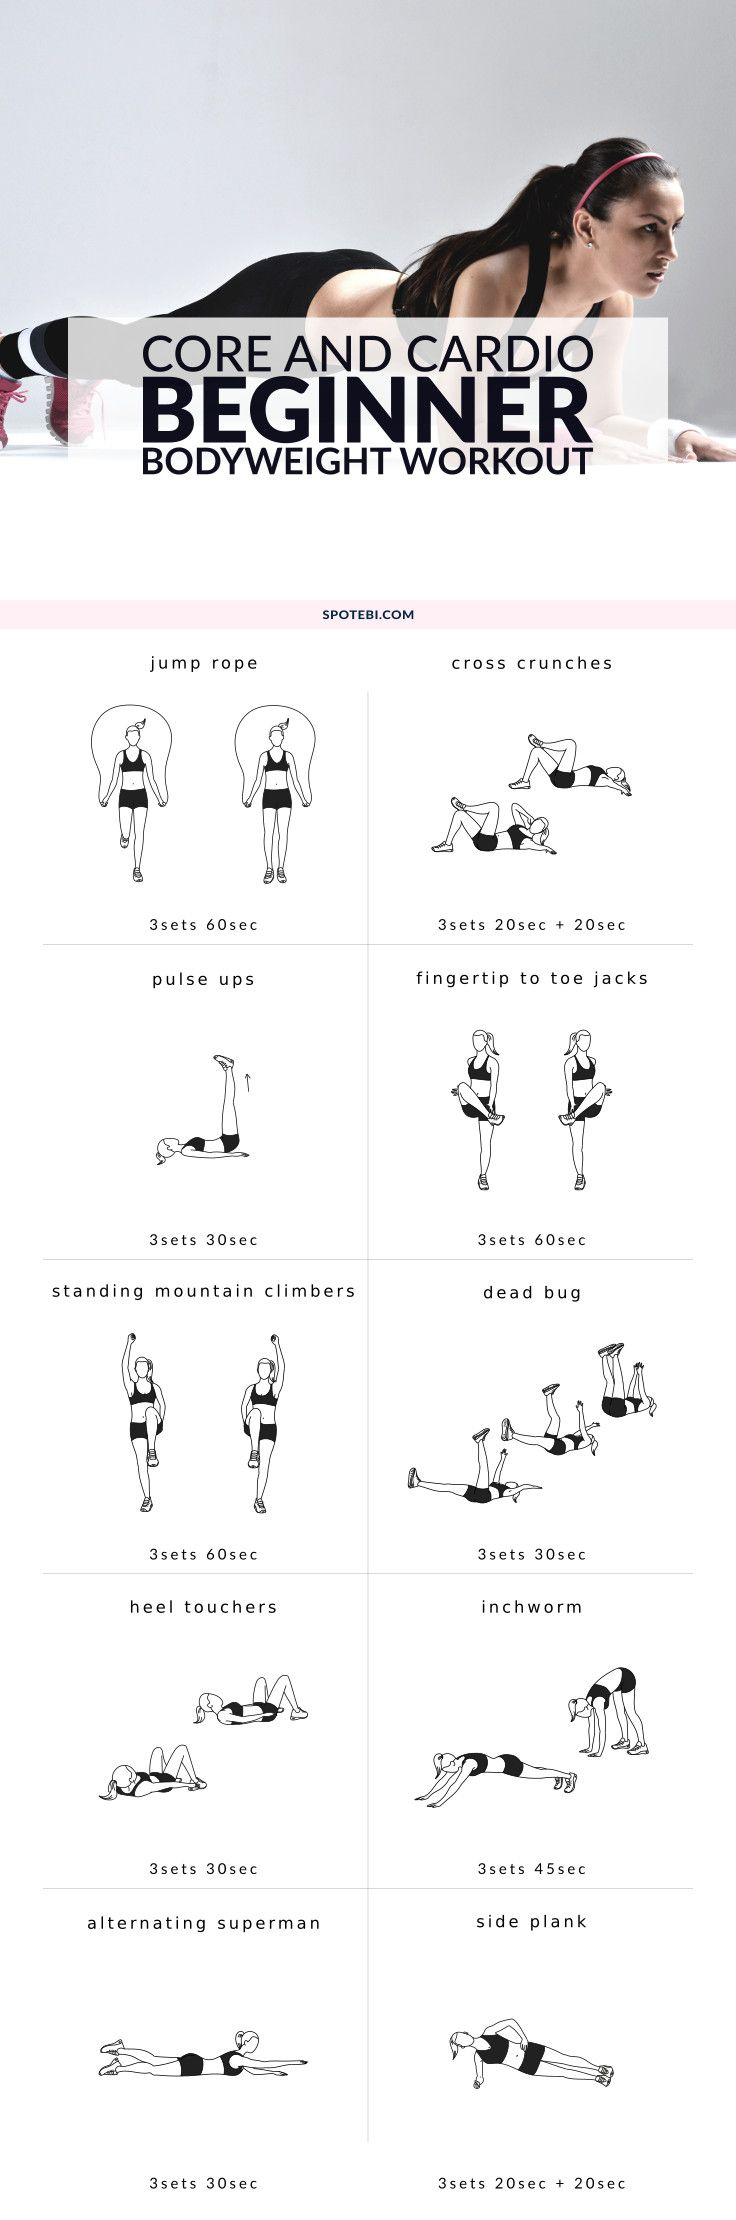 Boost your metabolism, trim your midsection and improve your fitness level with this core and cardio beginner bodyweight workout. 10 different exercises to target your core and burn body fat. http://www.spotebi.com/workout-routines/core-cardio-beginner-bodyweight-workout/